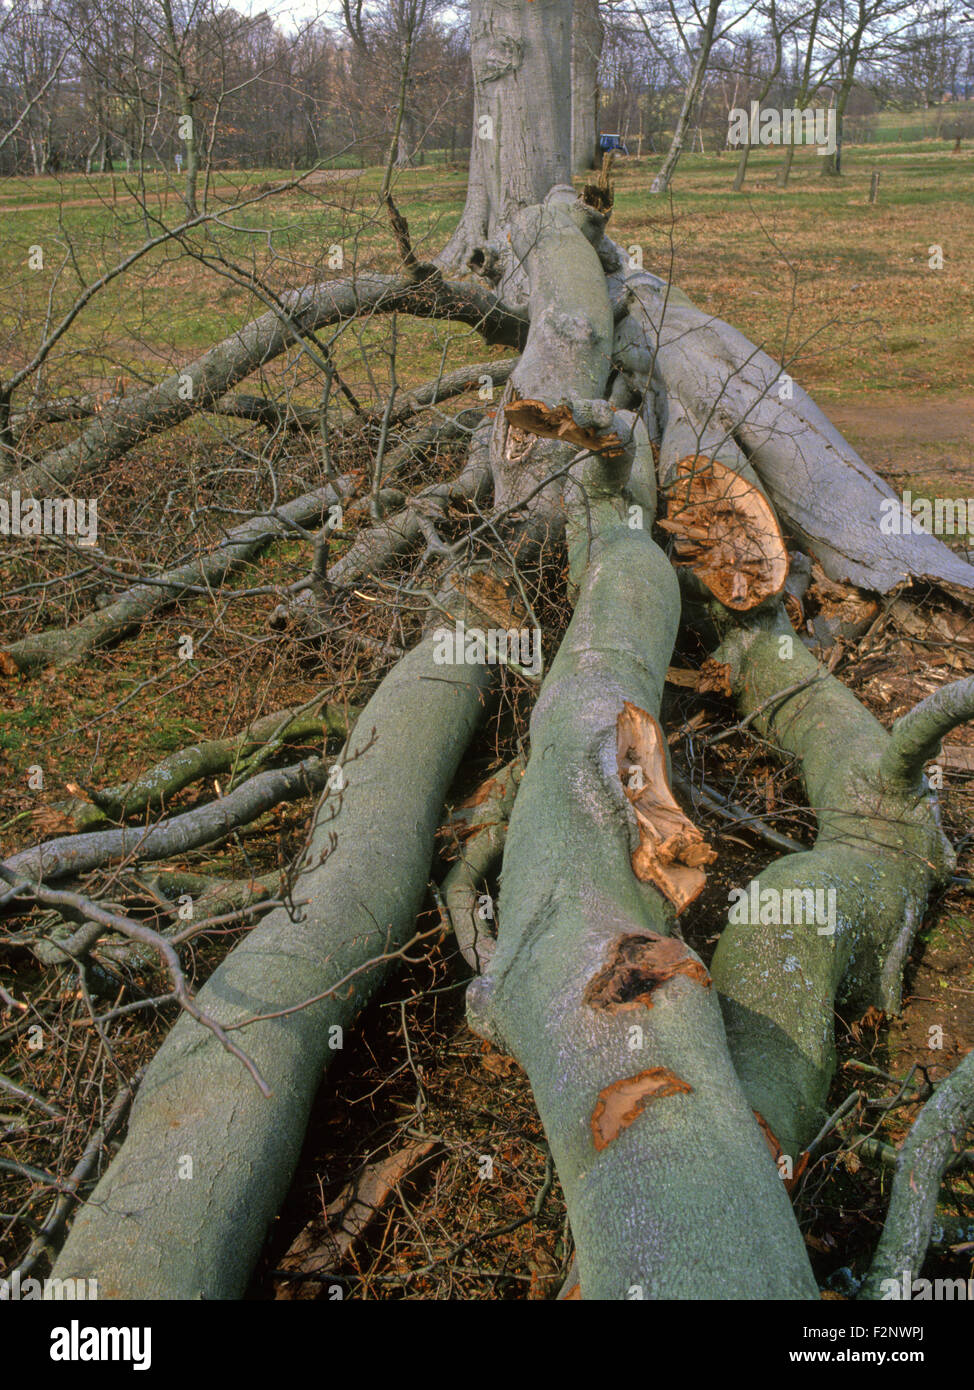 Storm wind damaged tree beech shattered in high winds UK South of England - Stock Image